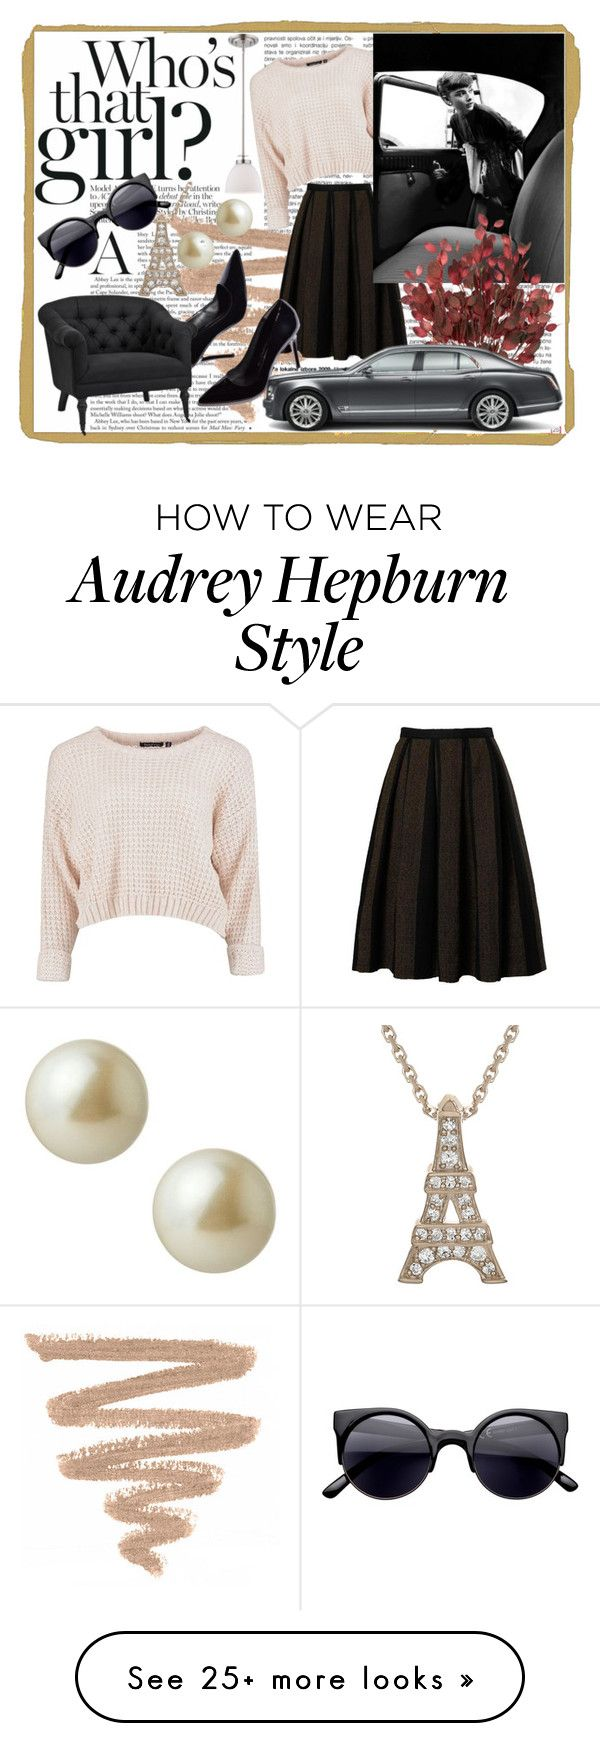 """""""Audrey H."""" by catgoddess on Polyvore featuring Bardot, Eichholtz, Carolee,"""